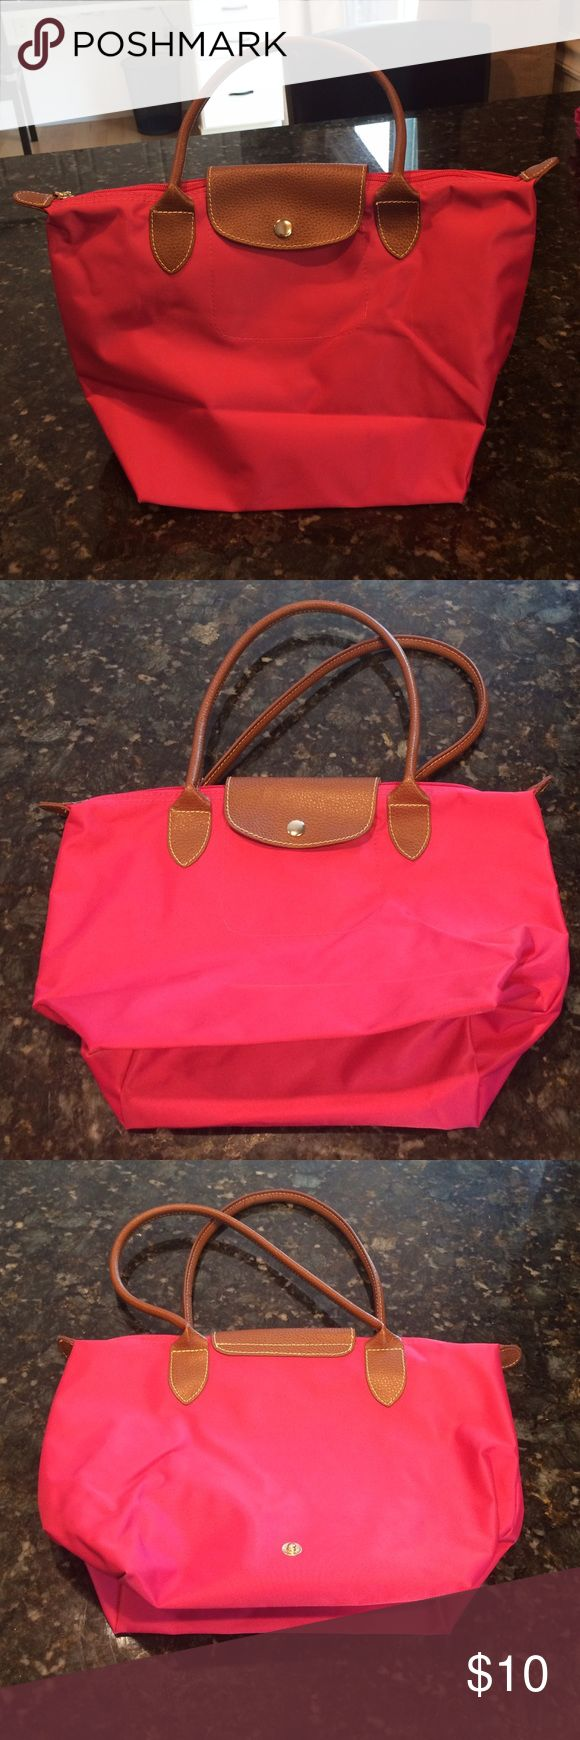 Long champ replica small bag This is a replica long champ bag in the size small. Bright pink with brown handles. Bags Shoulder Bags